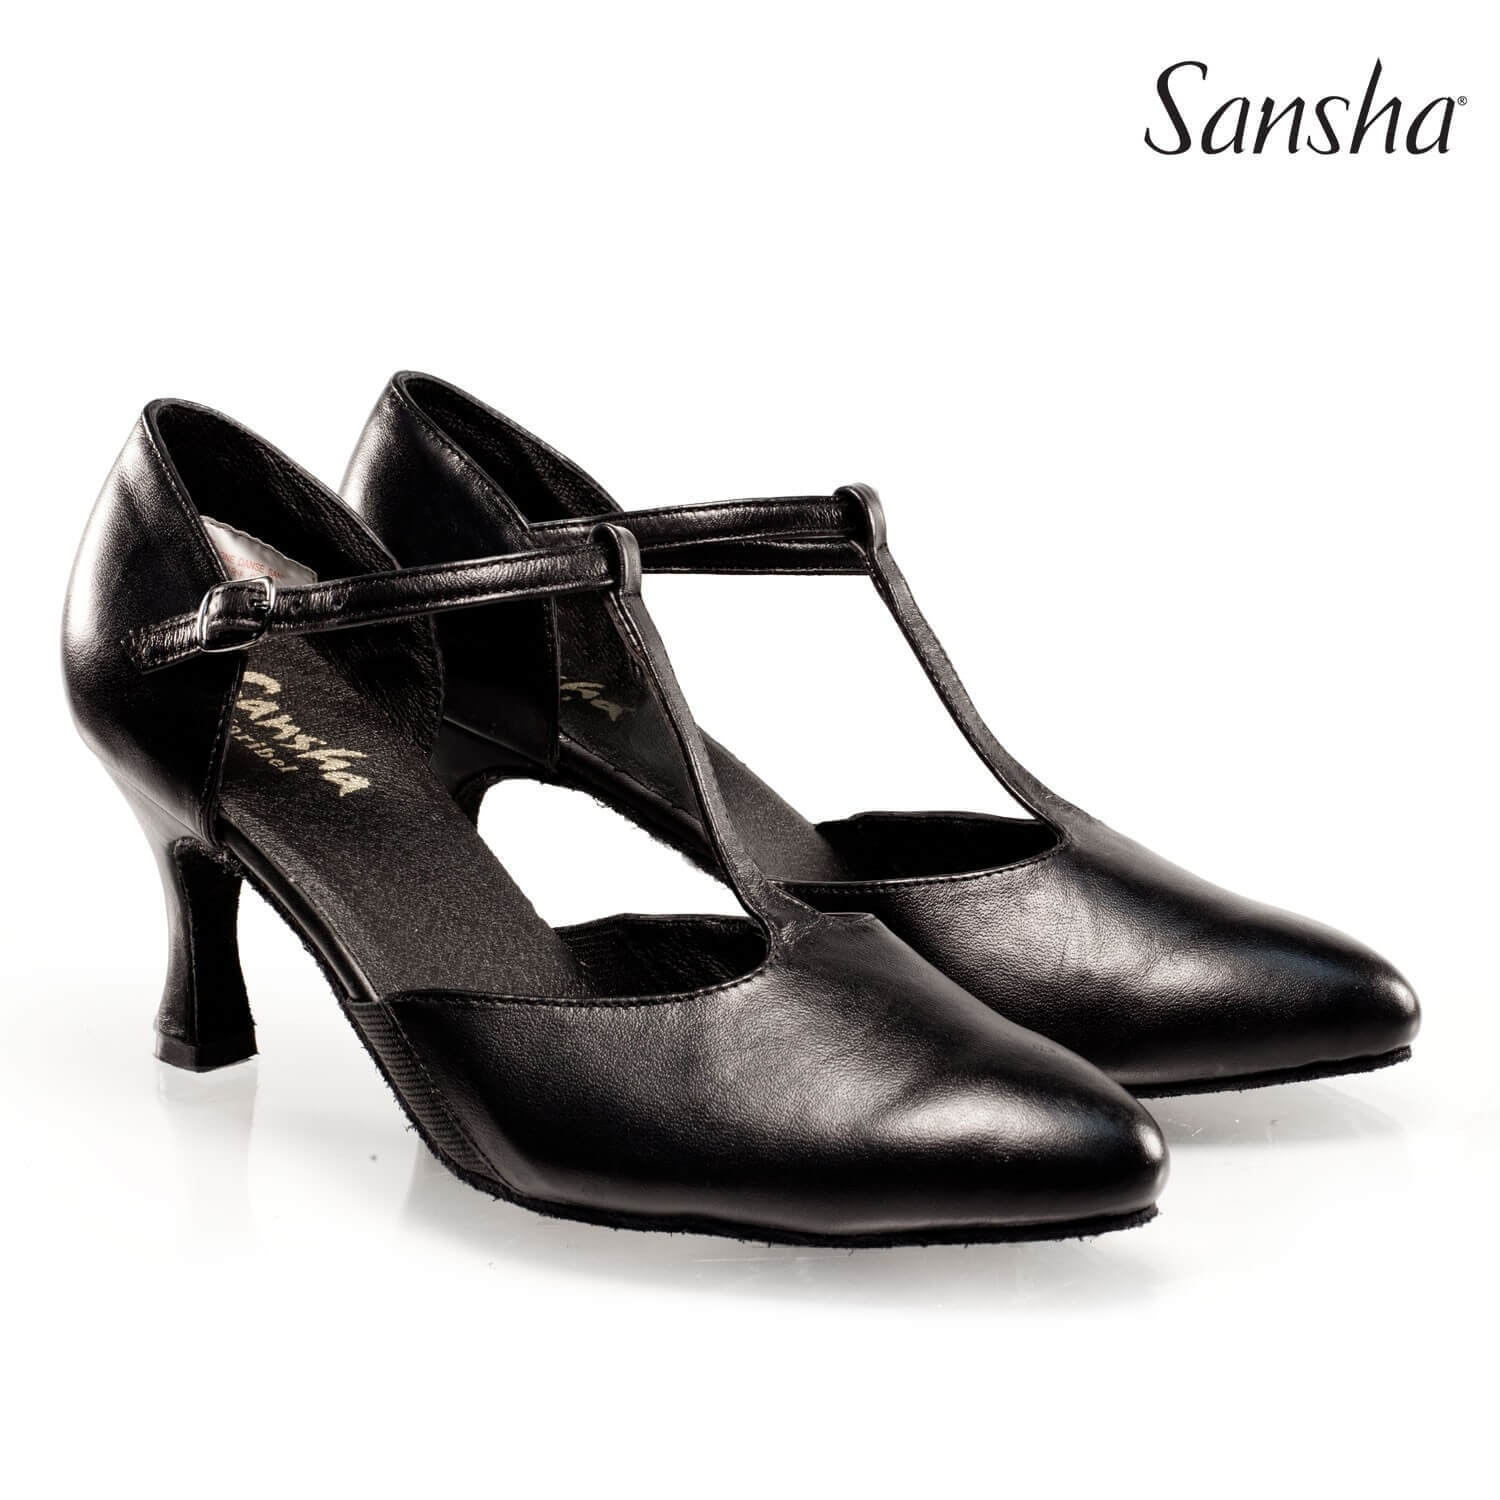 Sansha Maribel Standard Shoes